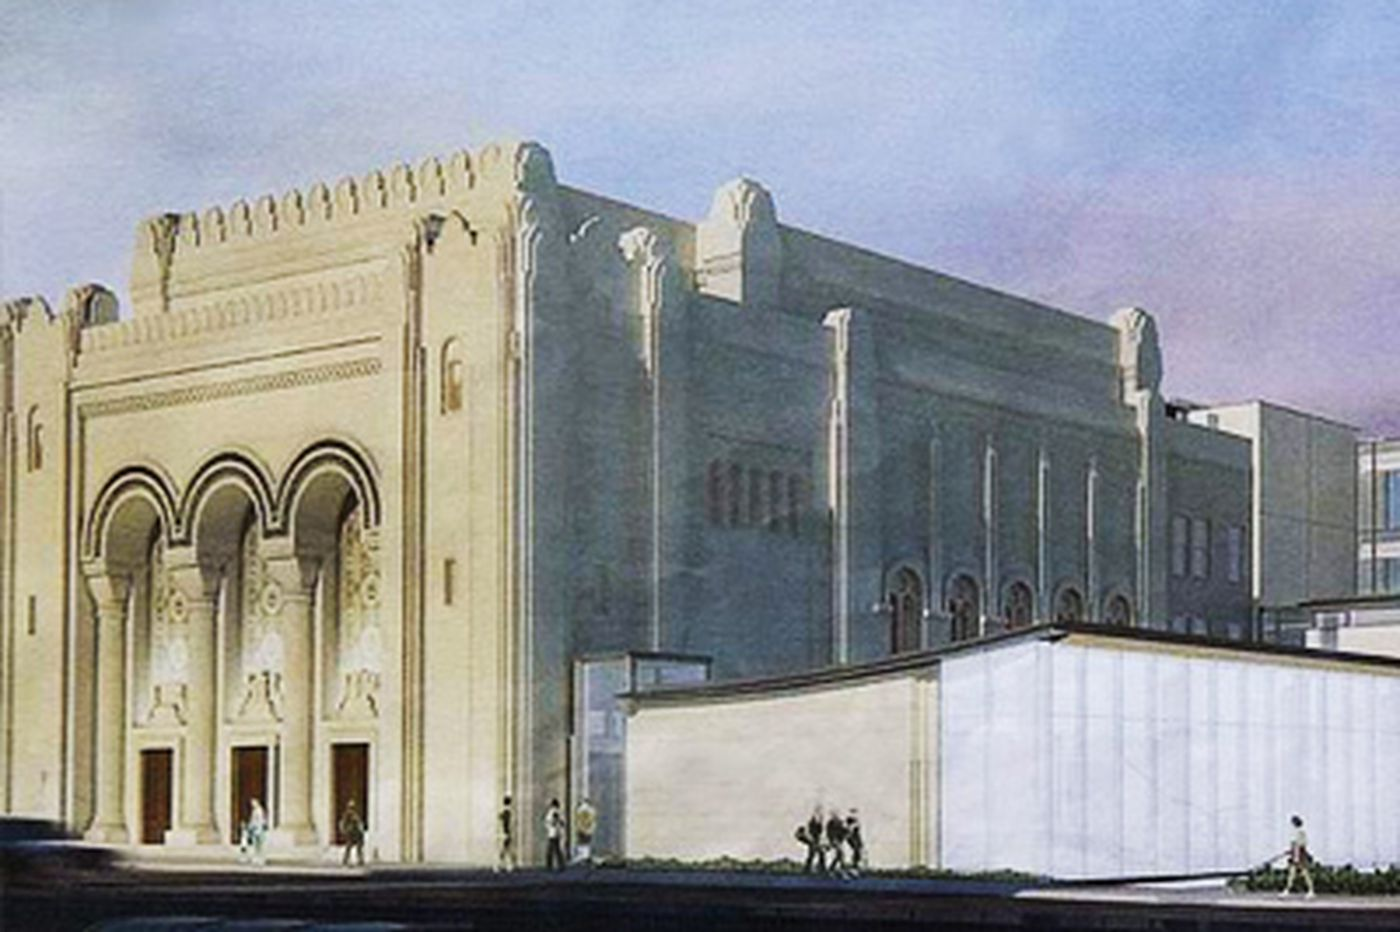 Synagogue expansion brings challenges